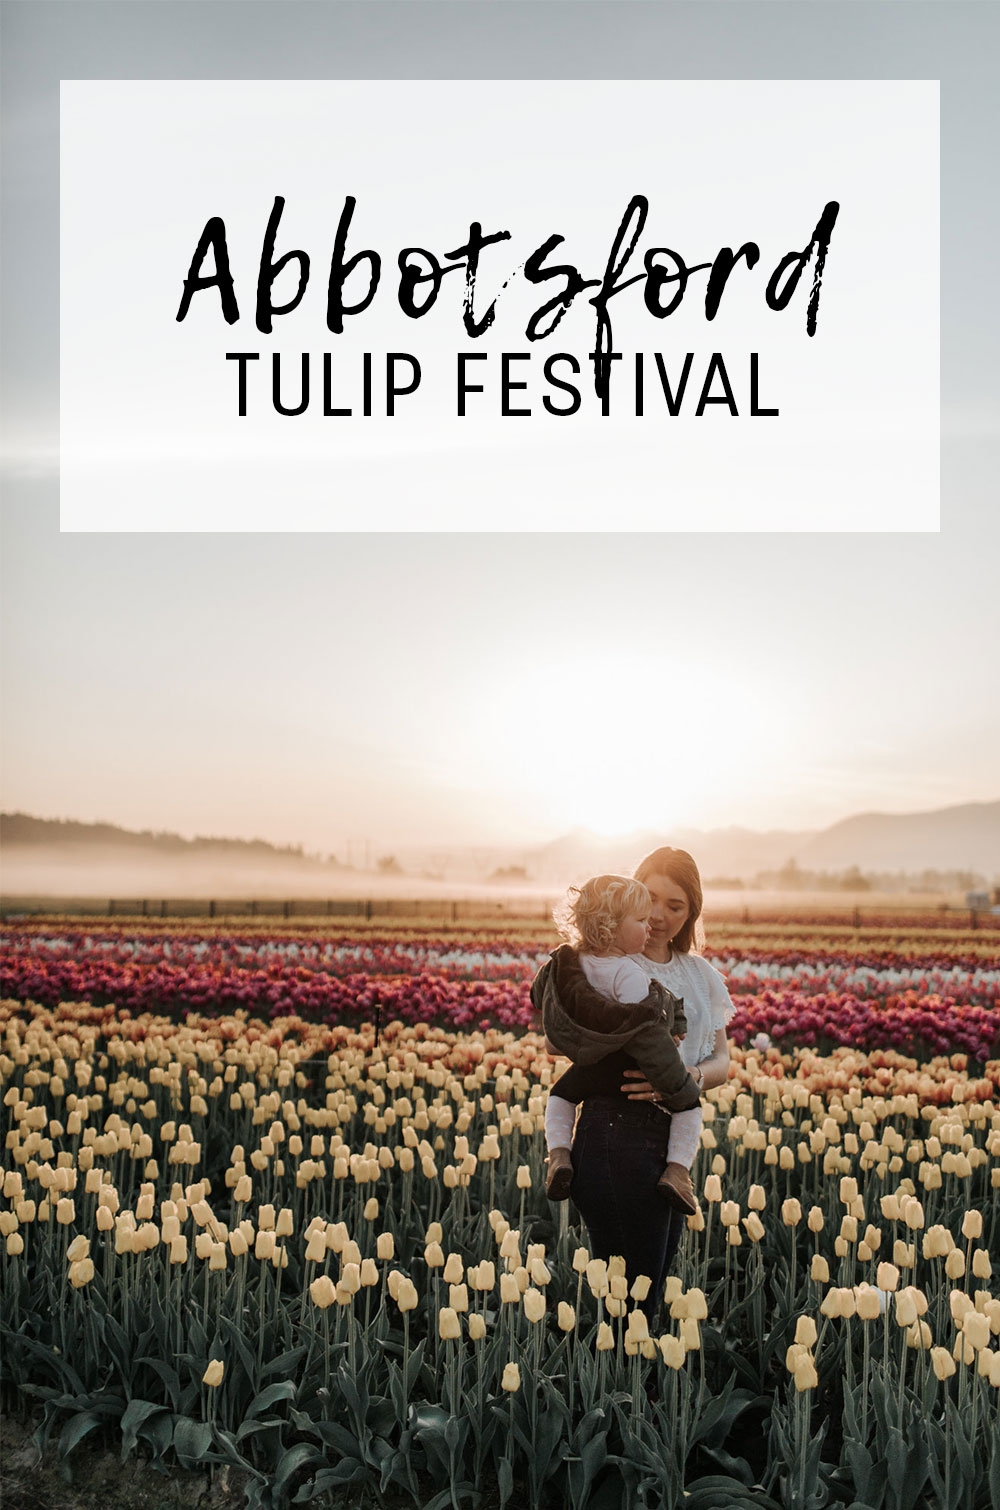 tickets for the abbotsford tulip festival